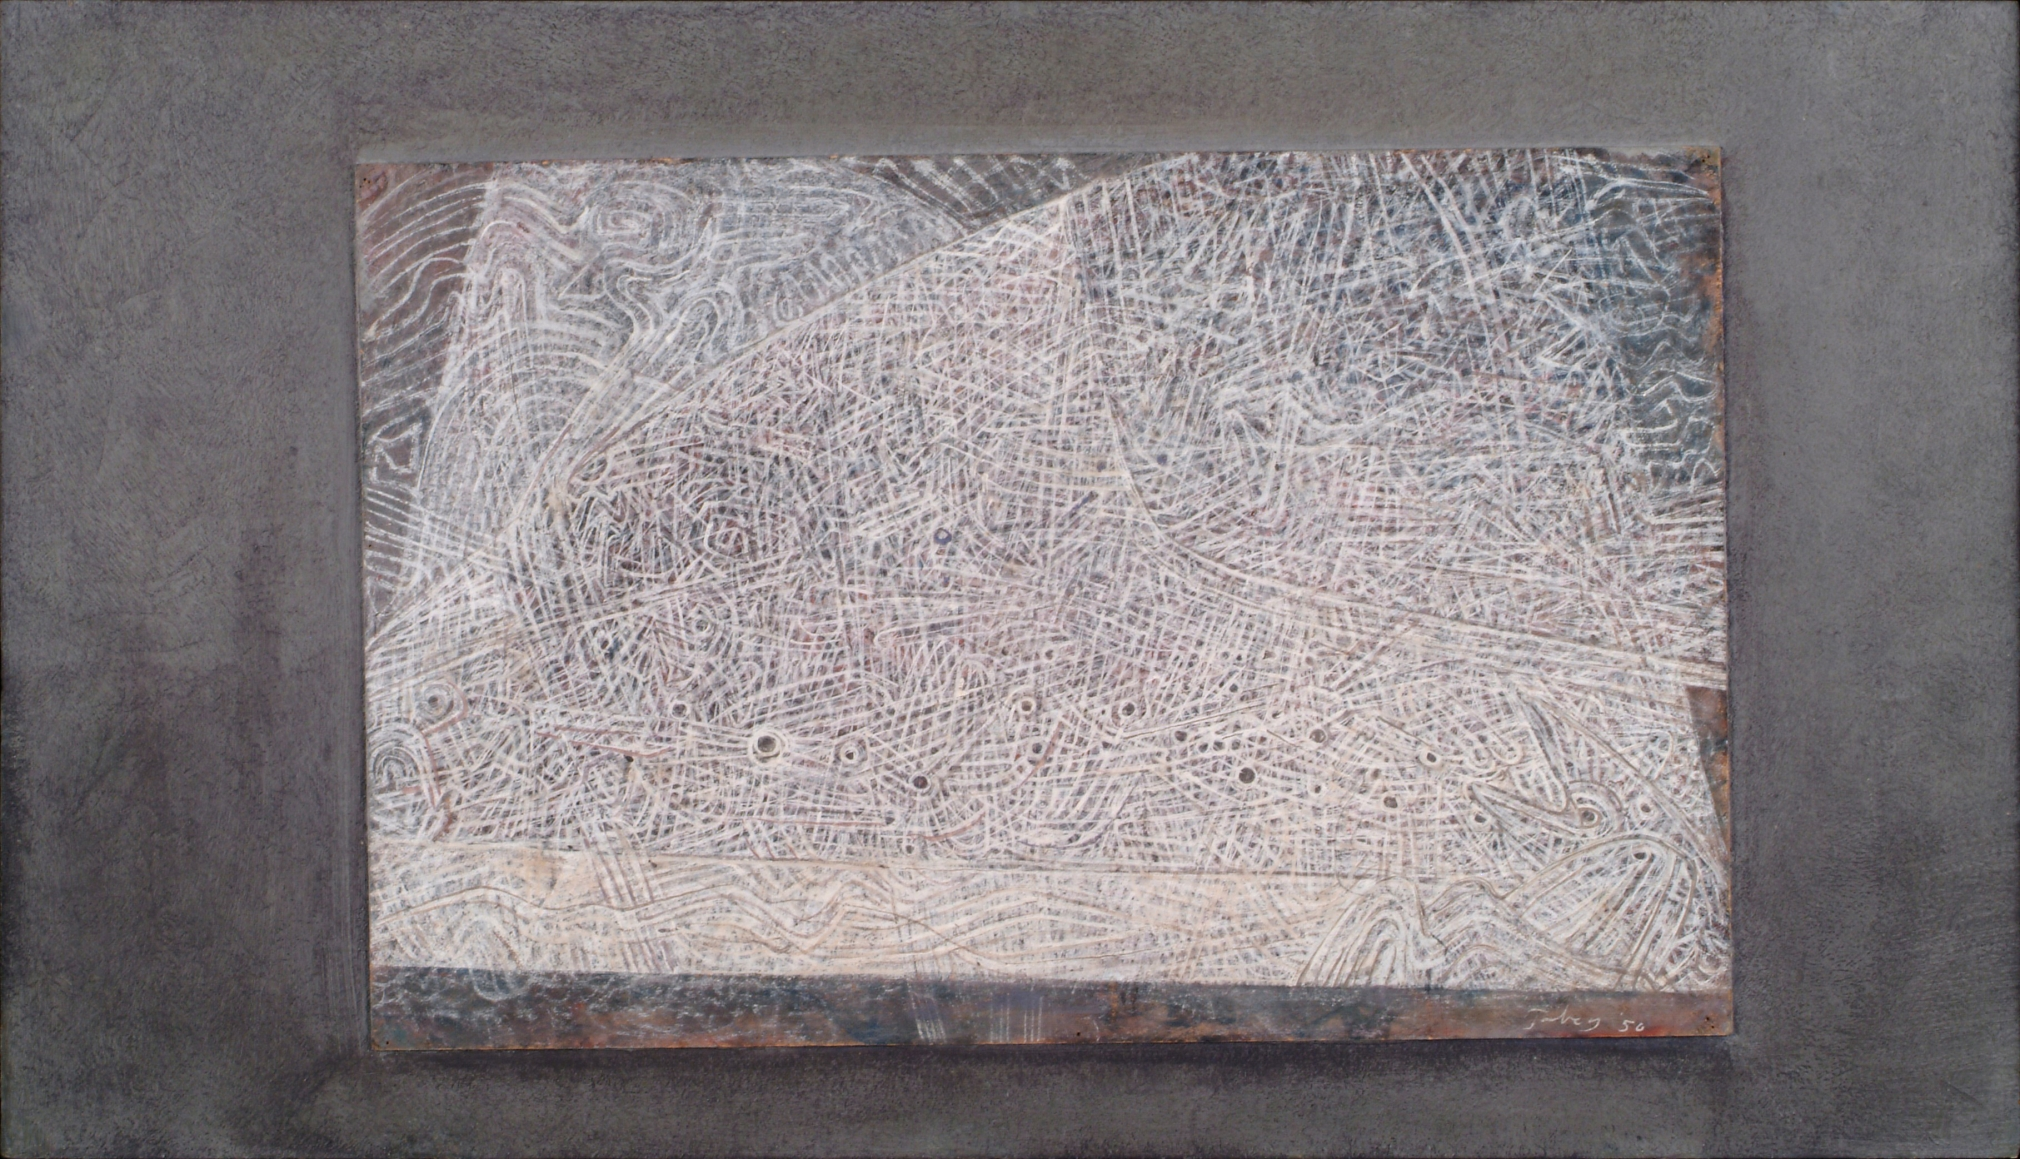 Mark Tobey, Pisces Borealis, 1950, Tempera on board, 11 x 17 in. (28 x 43.2 cm), Signed and dated lower right: Tobey 50